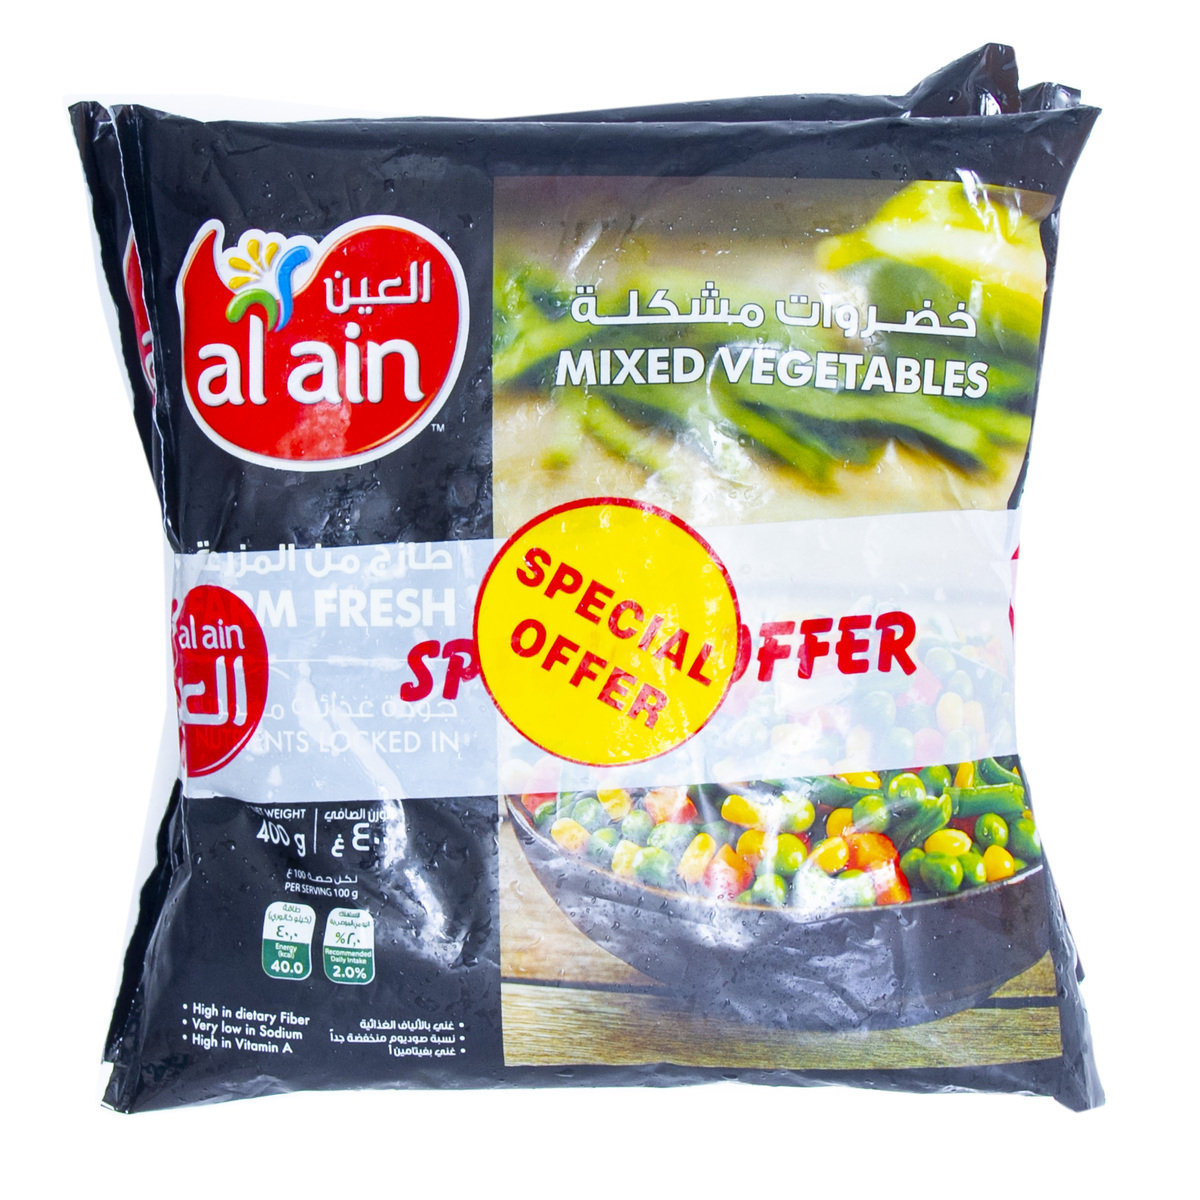 Al Ain Mixed Vegetables 3 x 400g